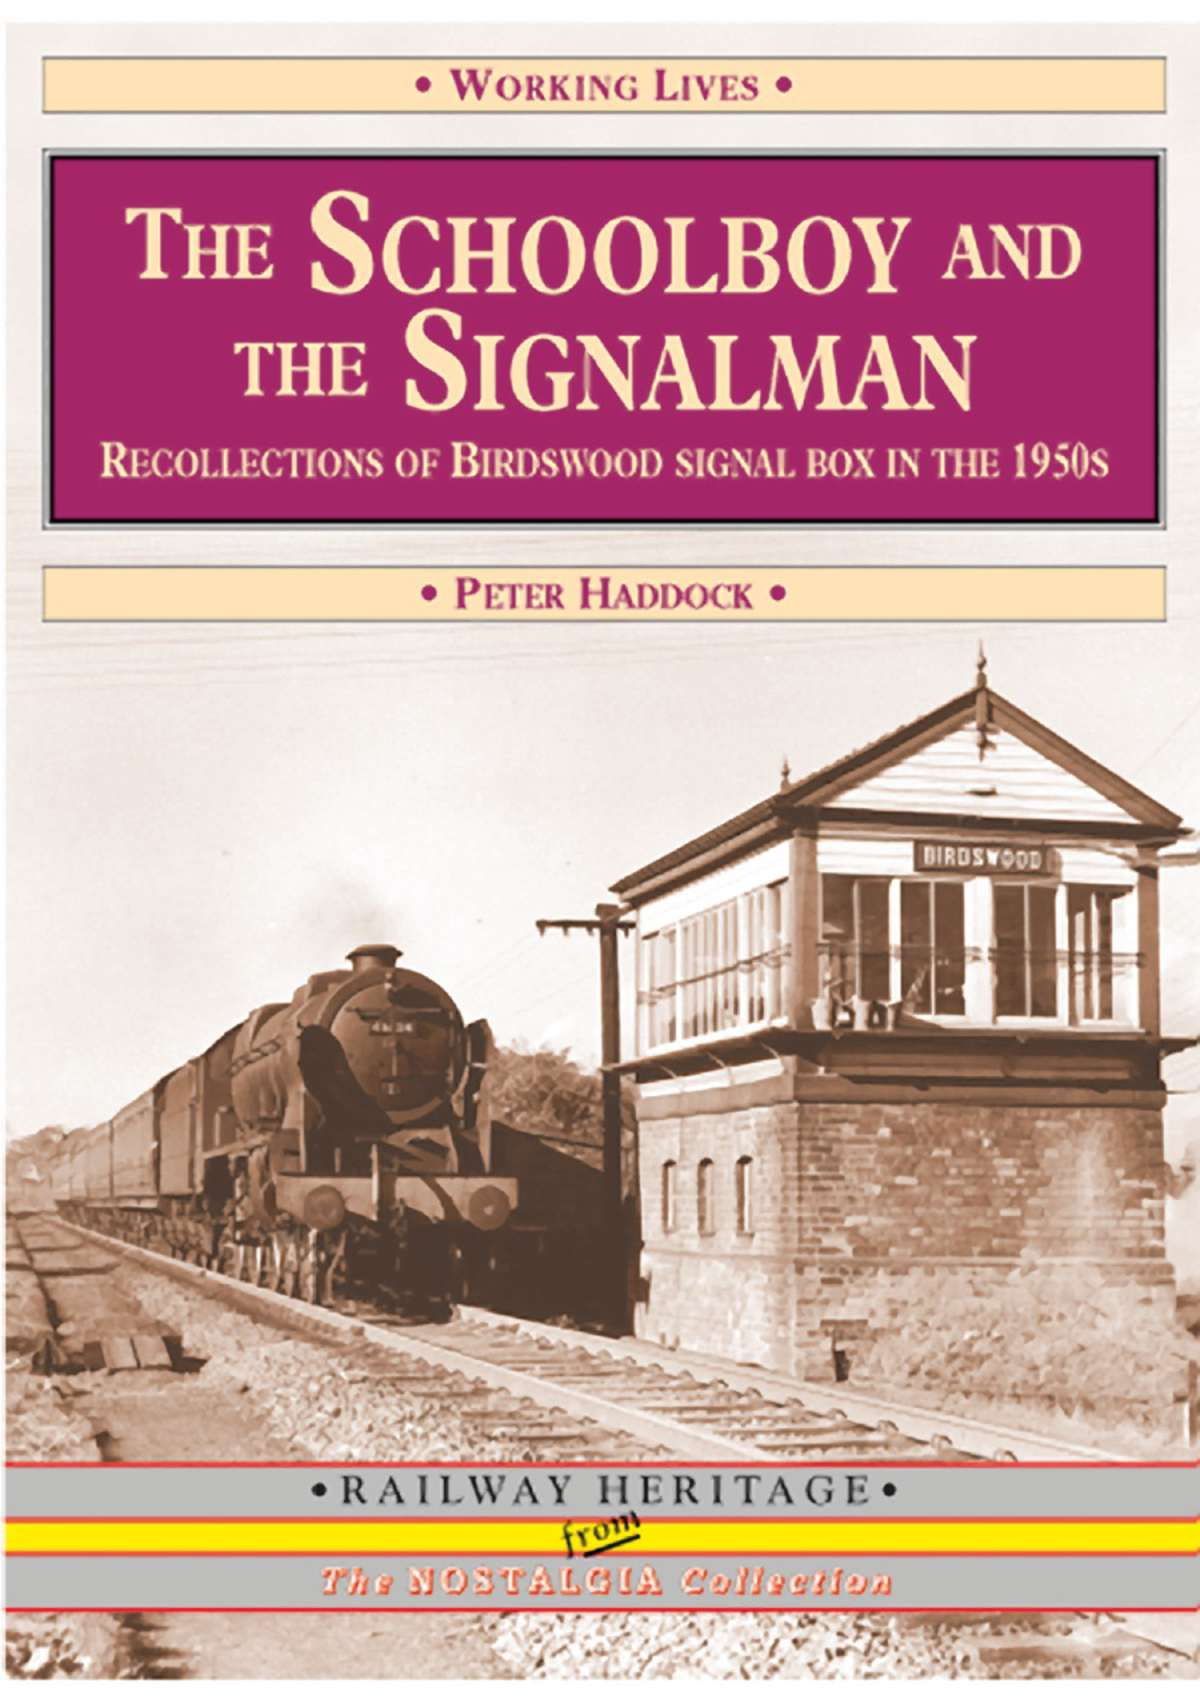 3139 - The Schoolboy & the Signalman